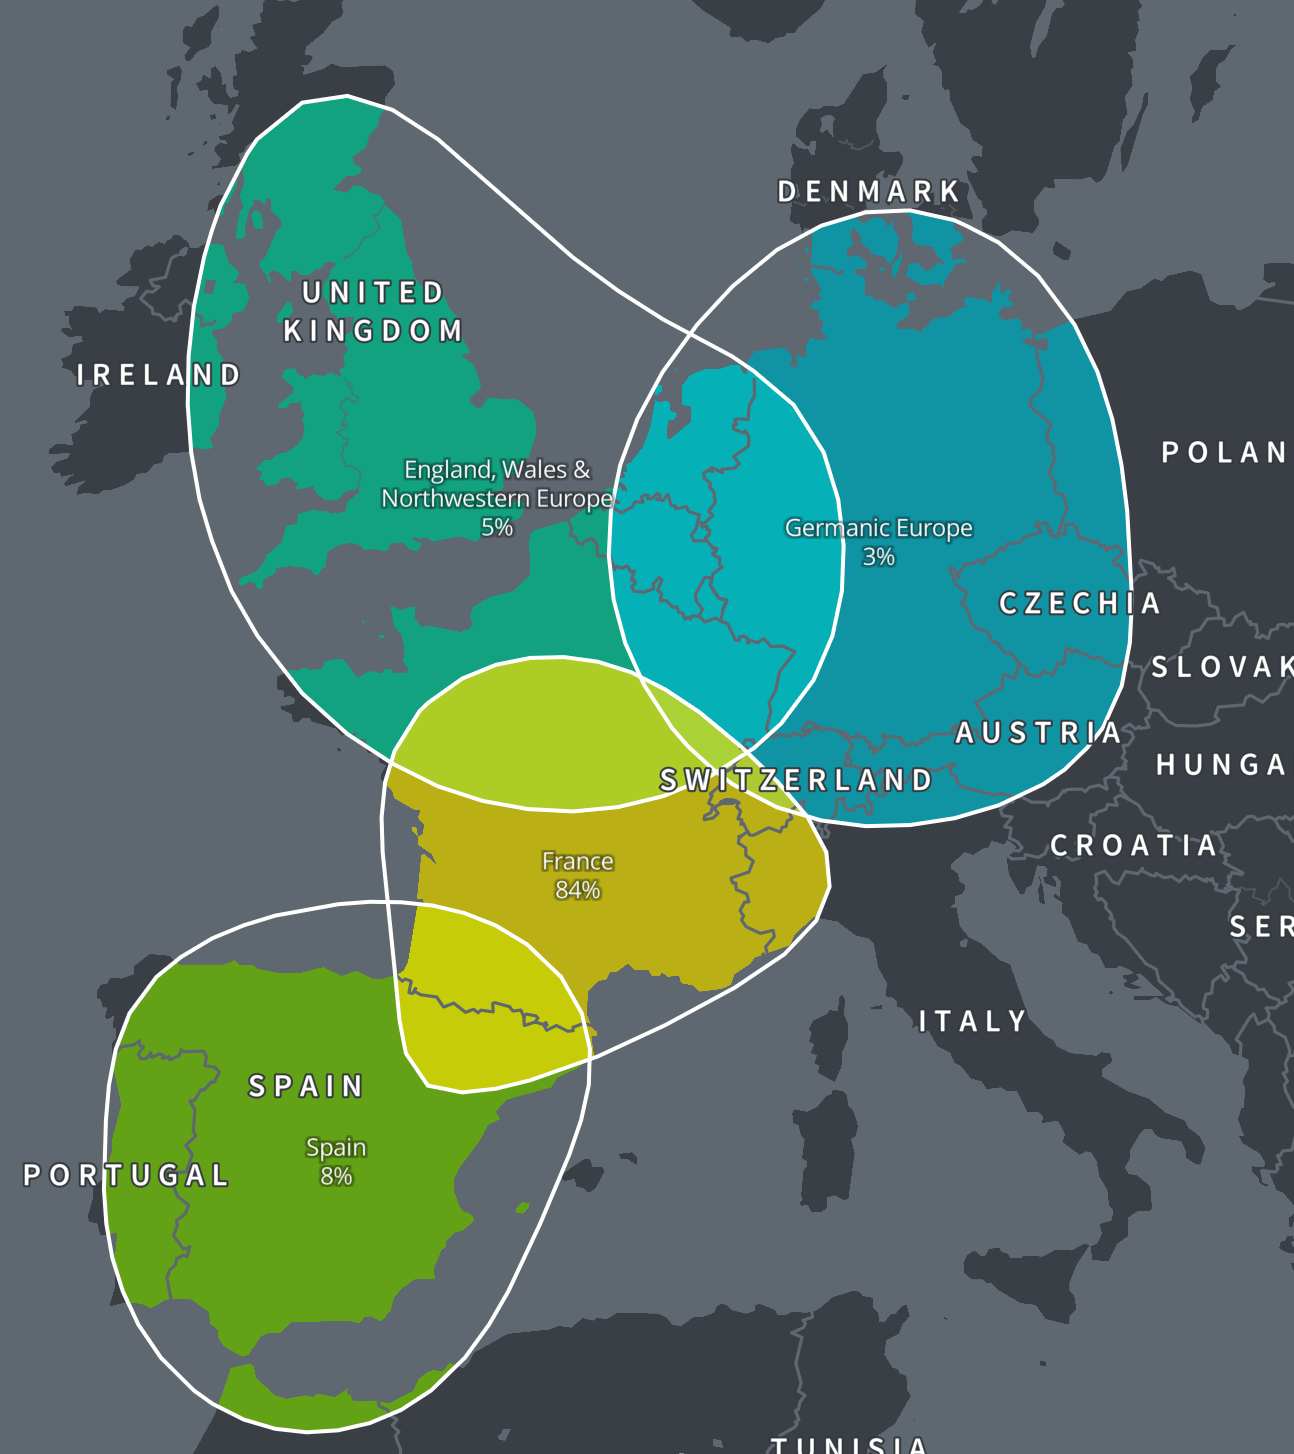 Major Enhancement to AncestryDNA's Ethnicity Estimates – The ... on city map of germany, income map of germany, religious map of germany, industry map of germany, geography map of germany, europe map of germany, country map of germany, wealth map of germany, world map of germany, education map of germany, language map of germany, state map of germany, color map of germany,